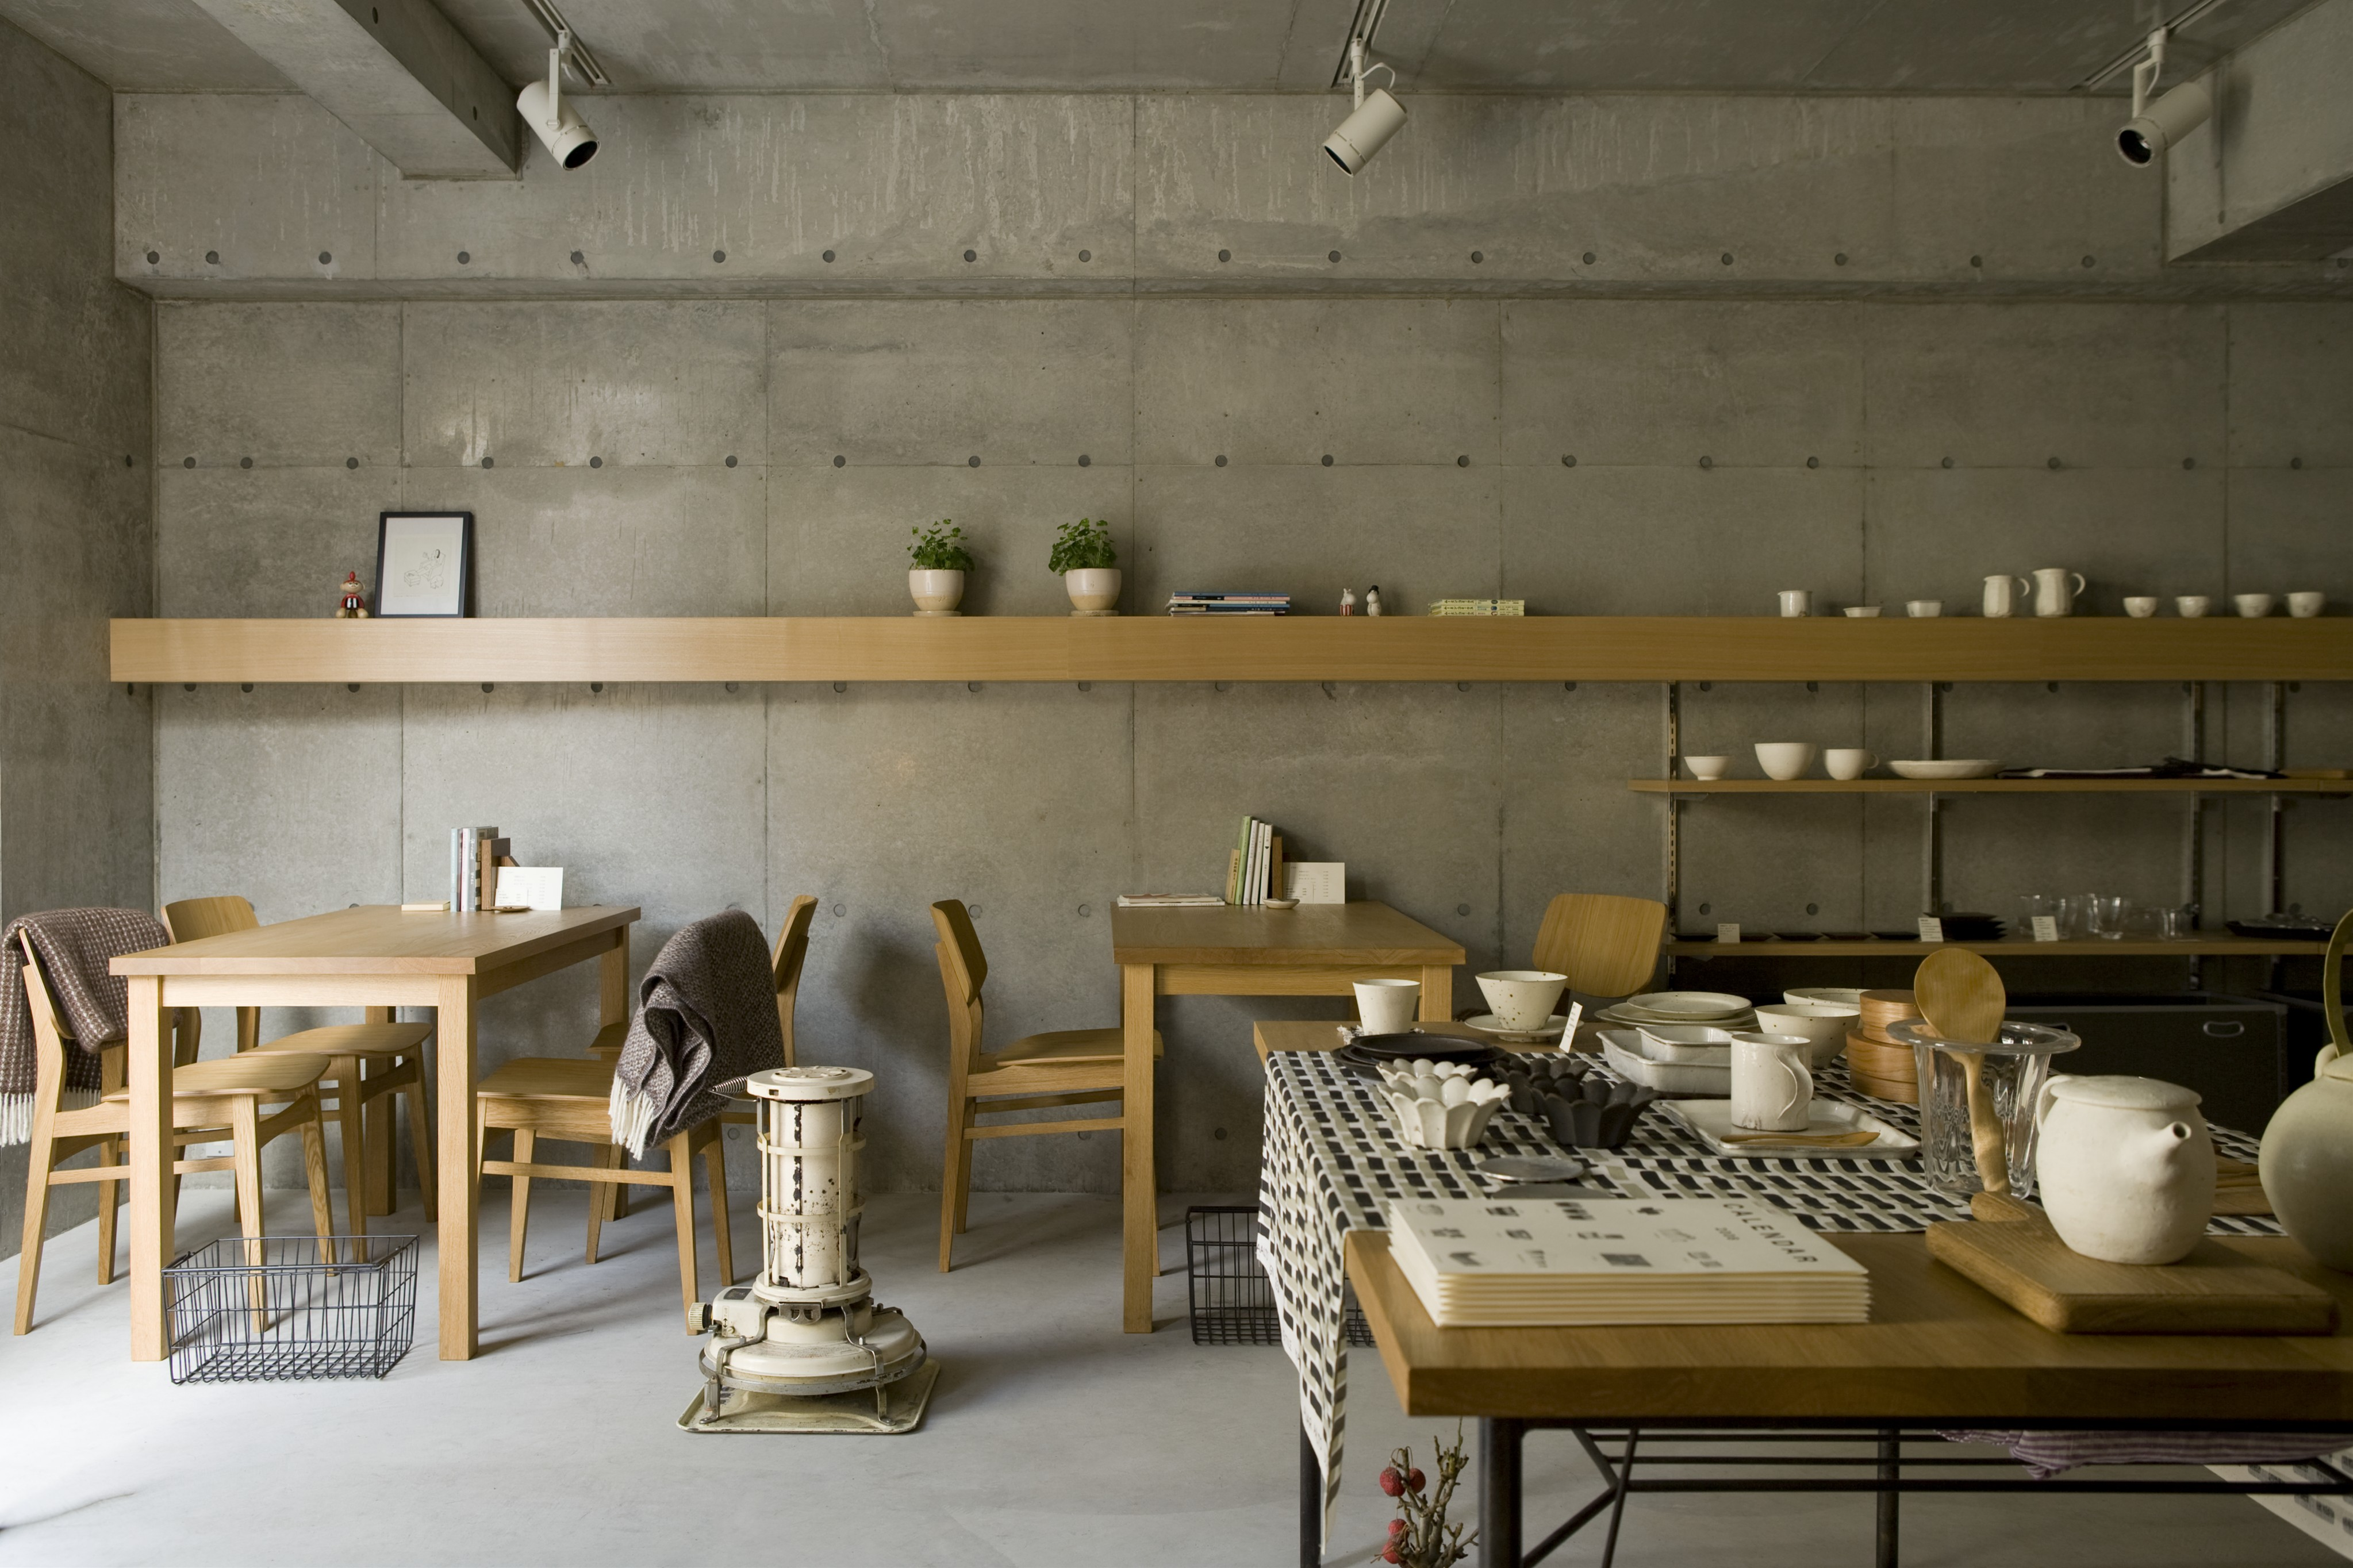 The open dining space features an array of light natural wood tables, with matching shelving running the length of the room, mounted to the concrete wall. Angled canister lights are seen above.